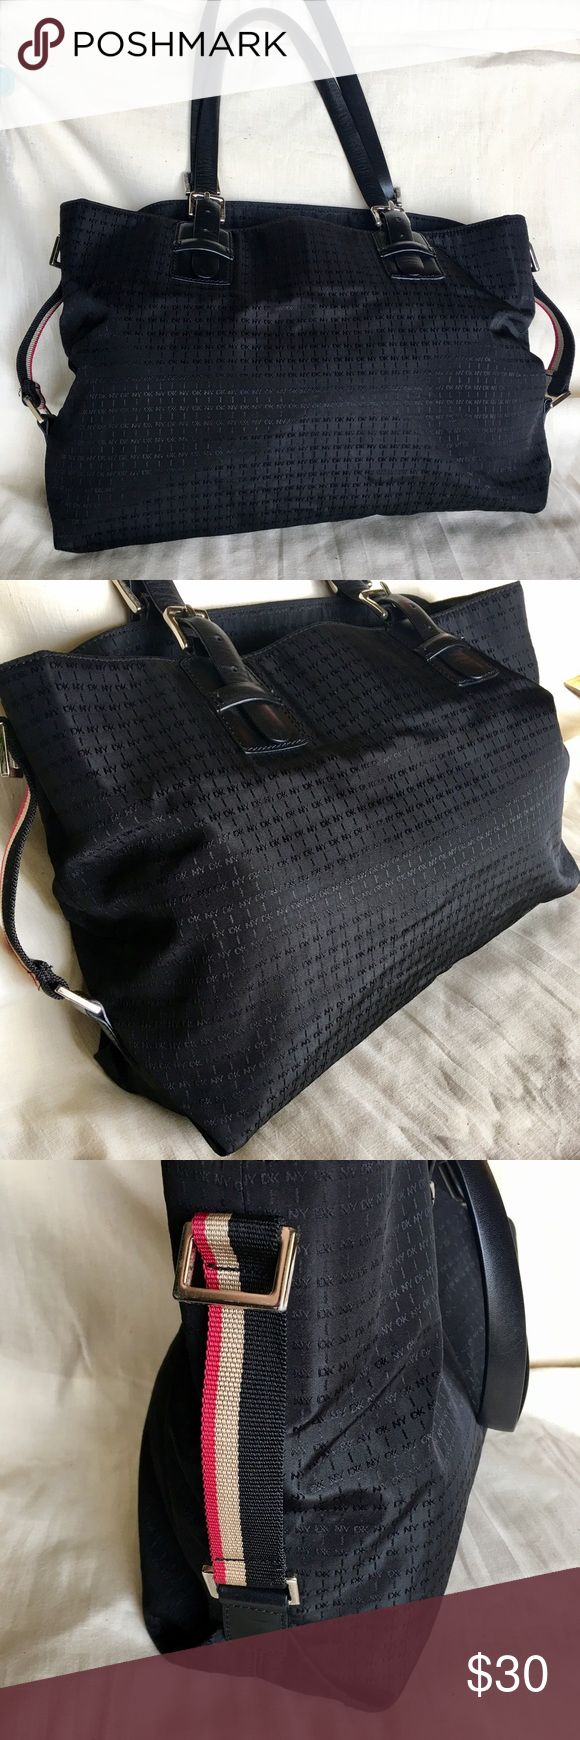 """DONNA KARAN NYLON /LEATHER LARGE SIZE HANDBAG Lightweight, Preowned in excellent condition!  This versatile authentic bag by DKNY Made in INDONESIA . Black Nylon /Leather has three inside pockets,middle one has zipper . One side zipper pocket. All zipper fully functional . Bag is in perfect condition and doesn't have any damage and completely clean. Measurements H10,5"""".  L14"""".  D4"""".  Straps drop 9,5"""" DKNY Bags"""